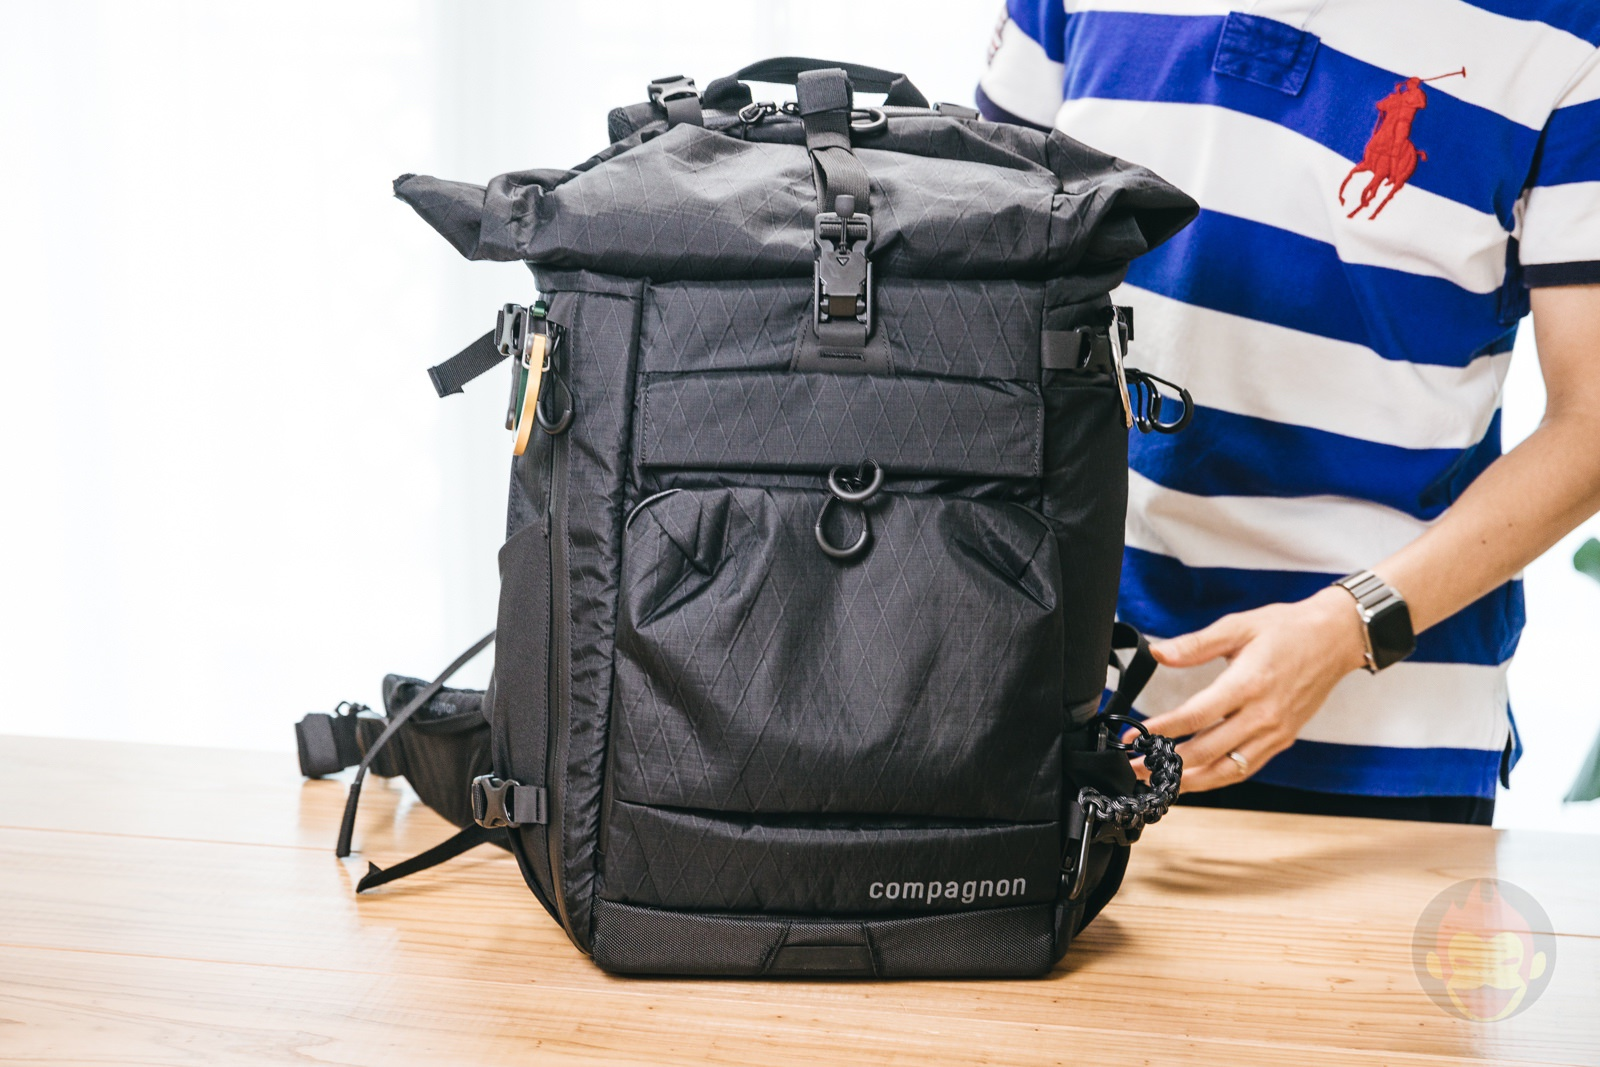 Compagnon element bacpack review 01